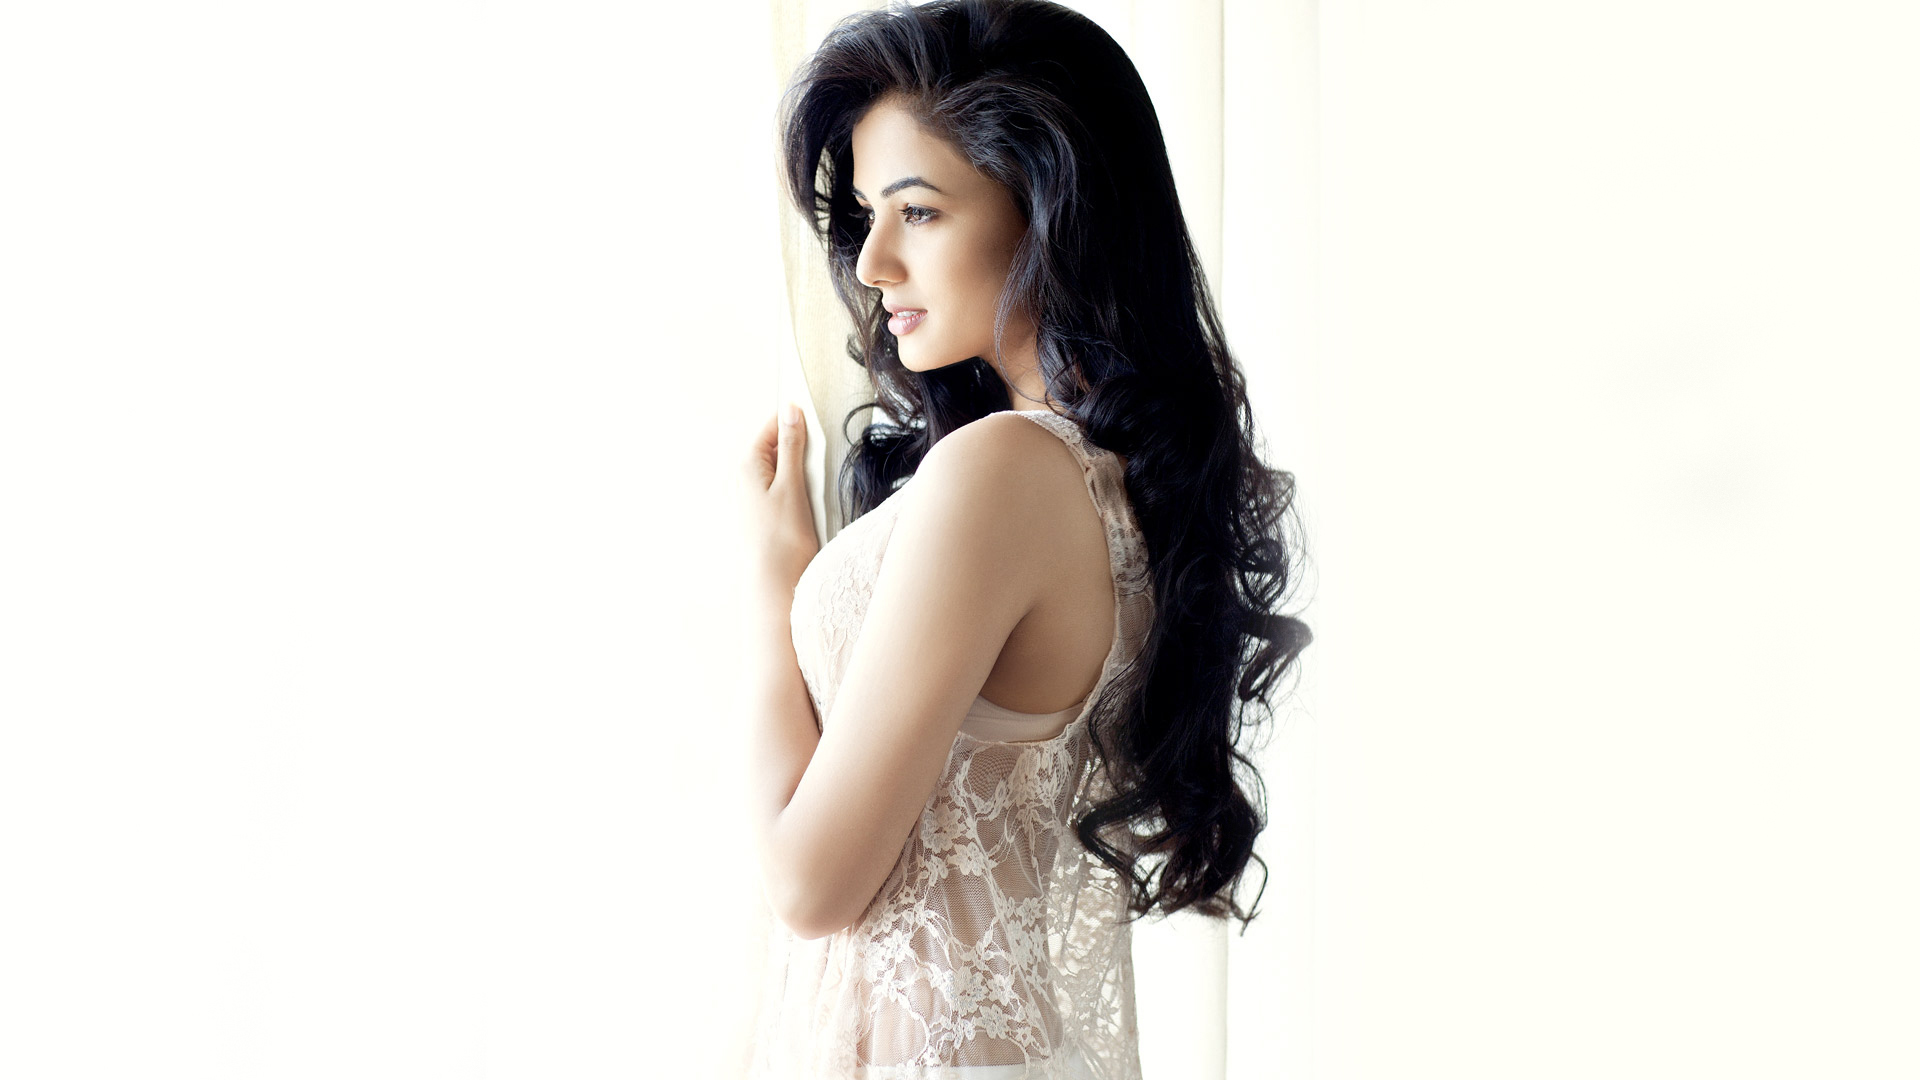 Desktop Lovely Sonal Chauhan Images Free Download